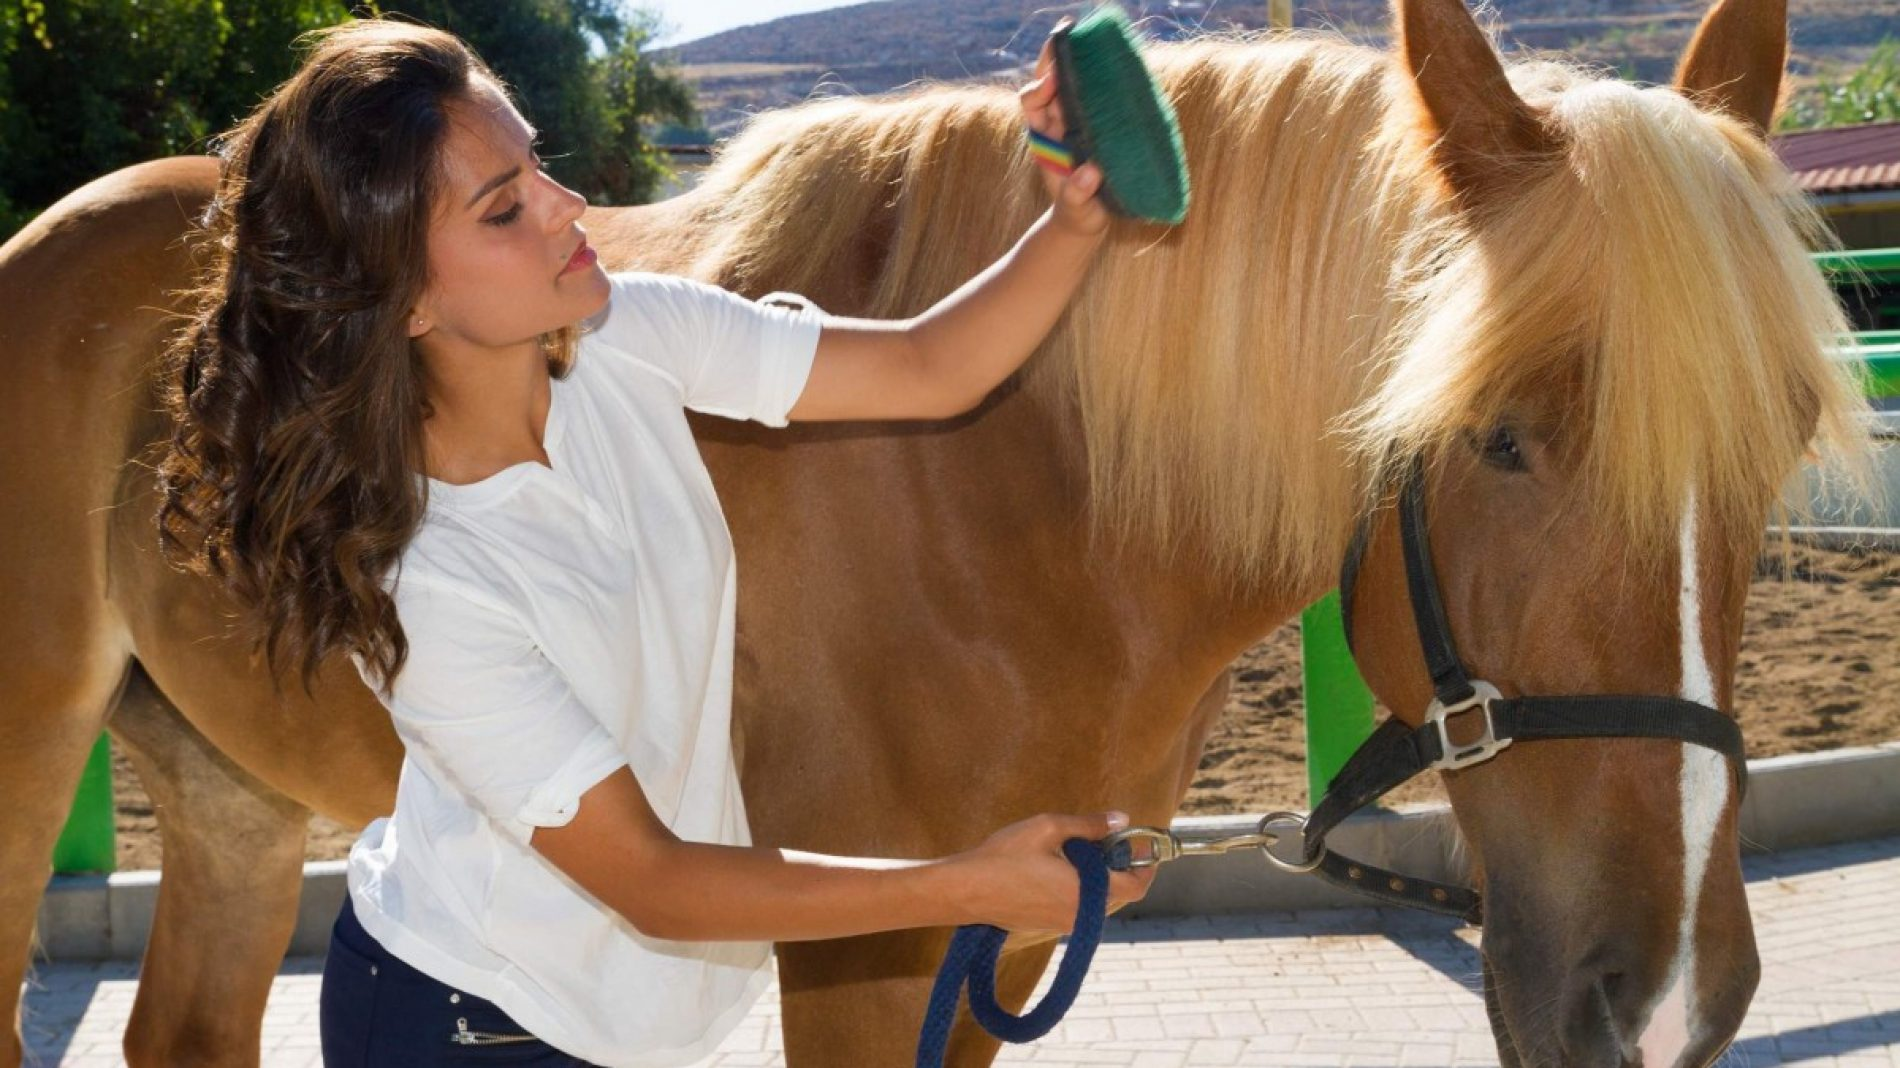 woman working with horses